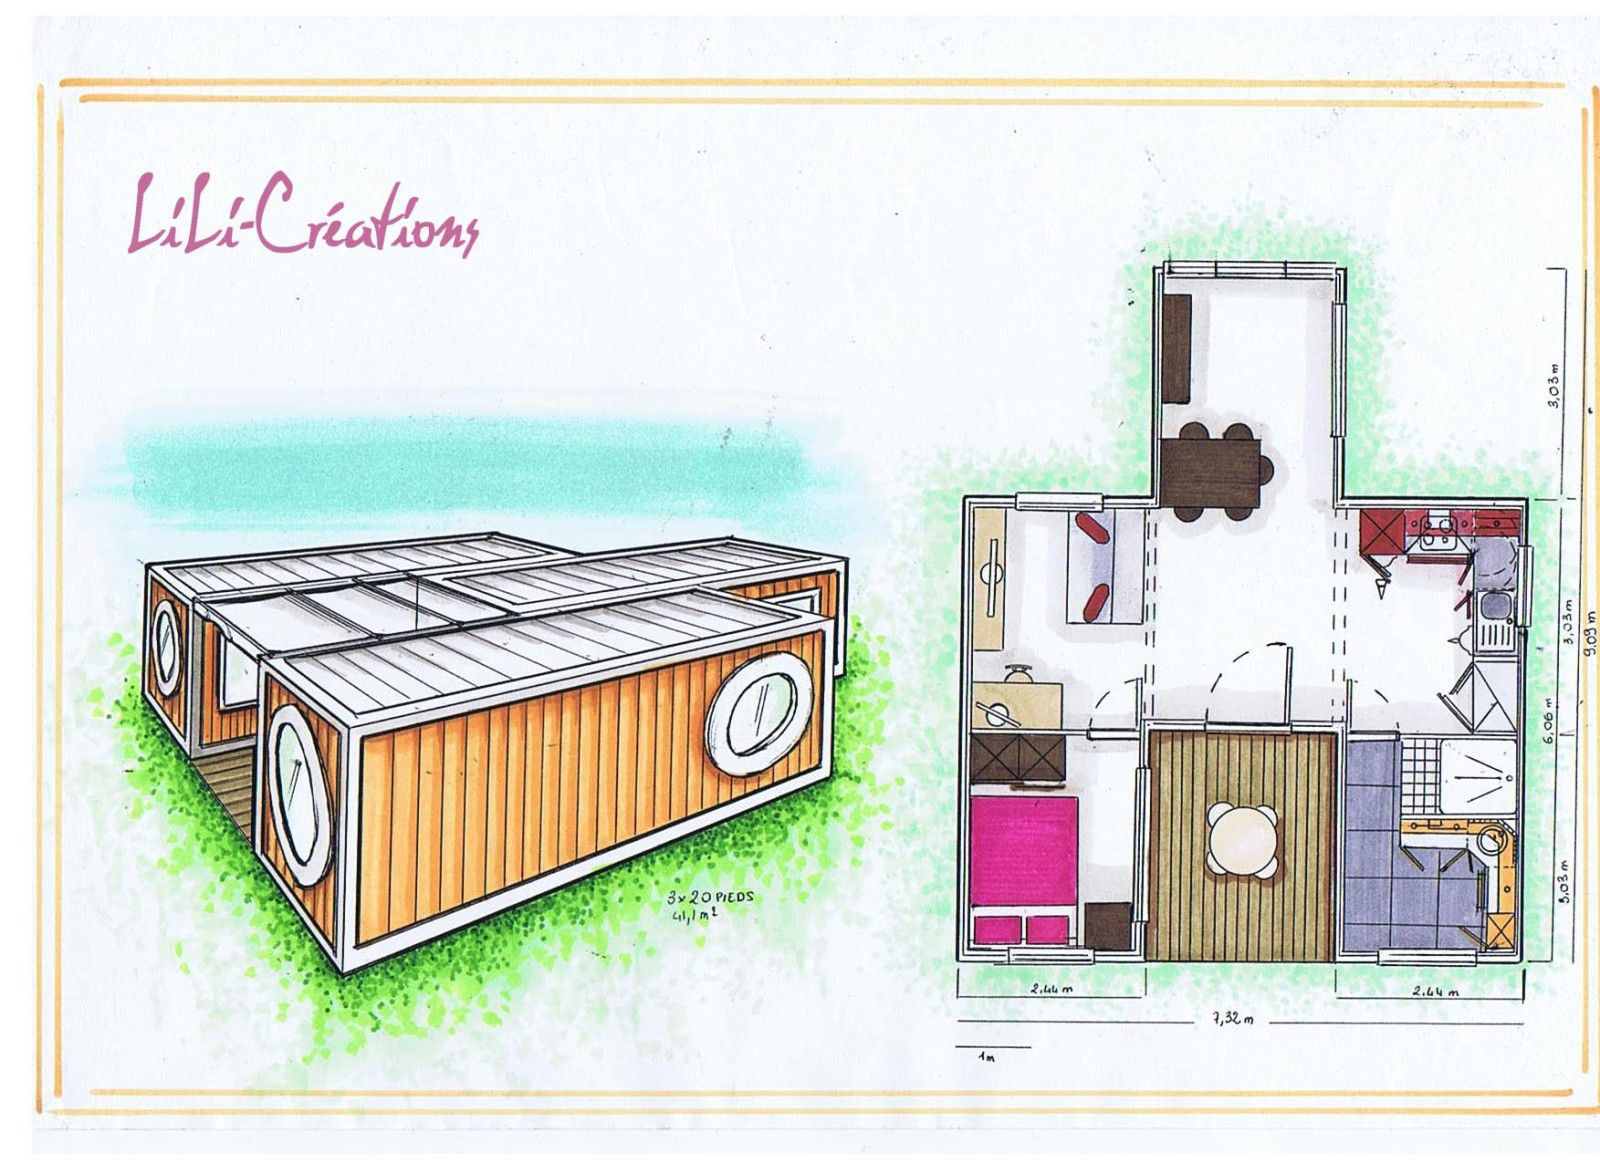 Le blog de elise fossoux d coration architecture d for Maison container 2 chambres